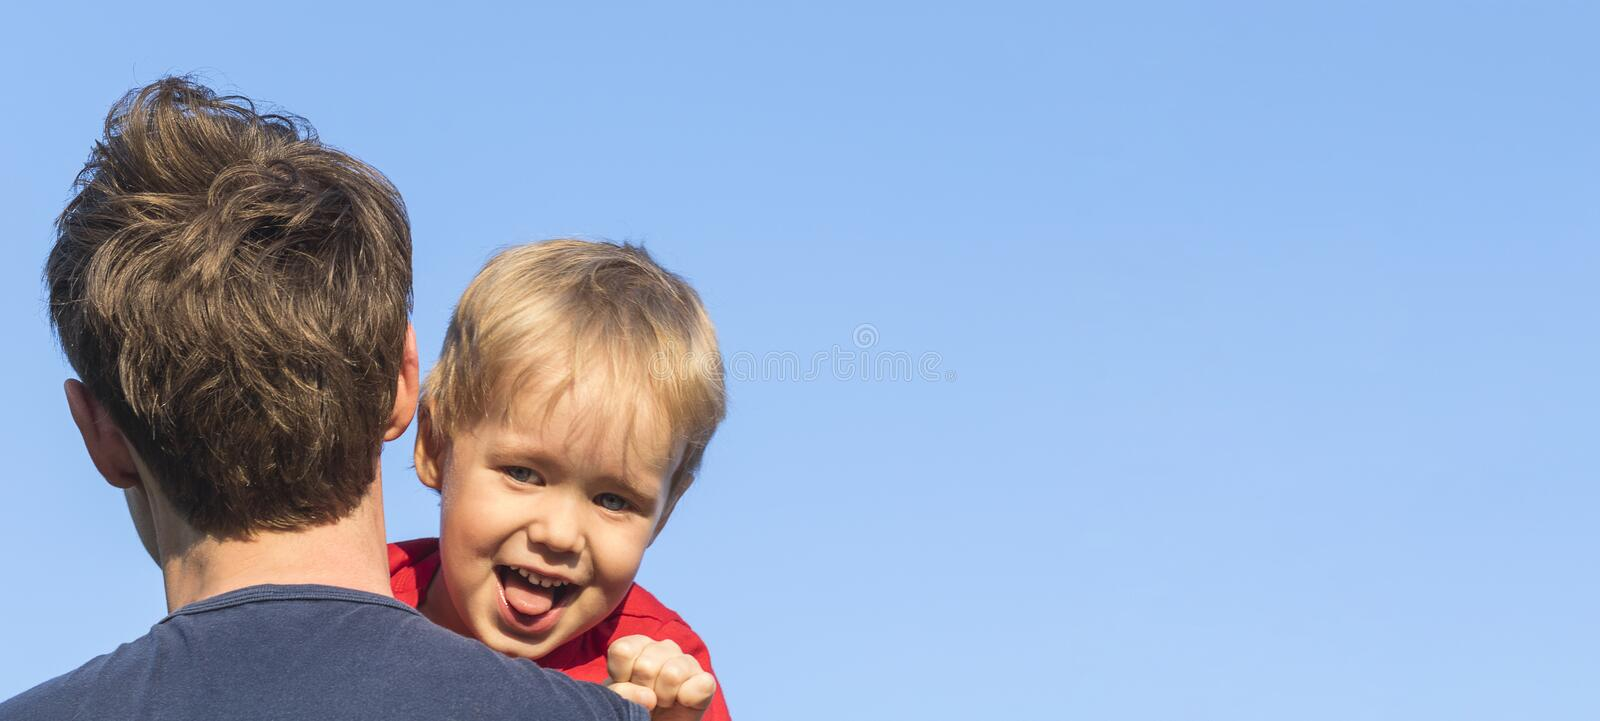 The father carries his son on his shoulder against the blue sky. Cheerful and funny little boy - blond looking at the camera and royalty free stock photos